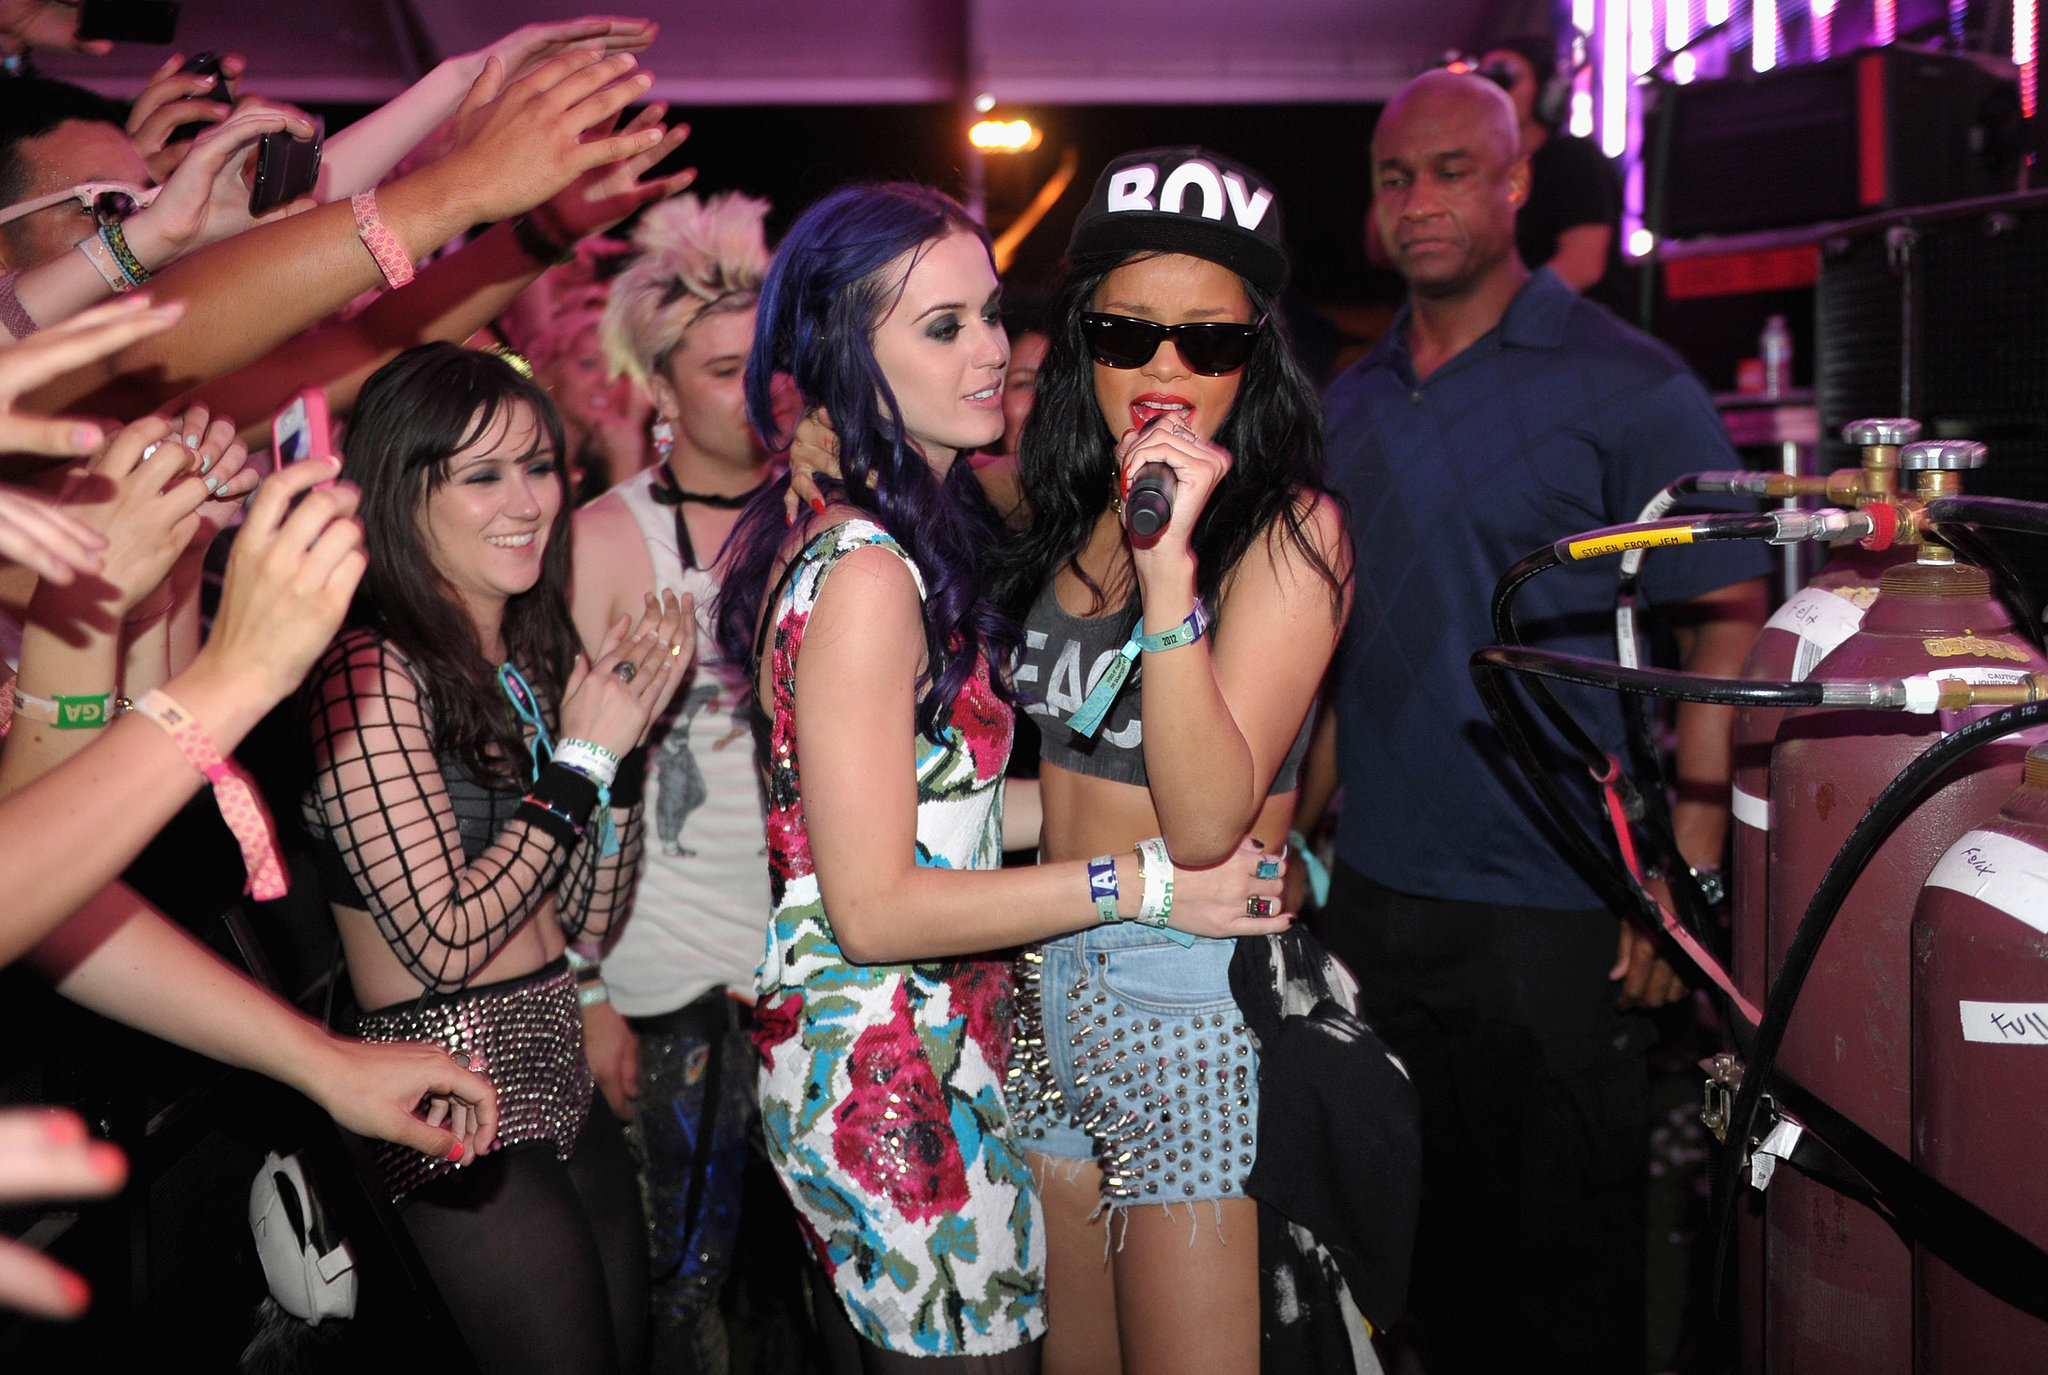 Rihanna and Katy Perry are such good friends that Rihanna was a part of Katy's small bachelorette party back in 2010. They managed to catch up at Coachella in 2012, and they love to get together whenever their busy schedules allow.